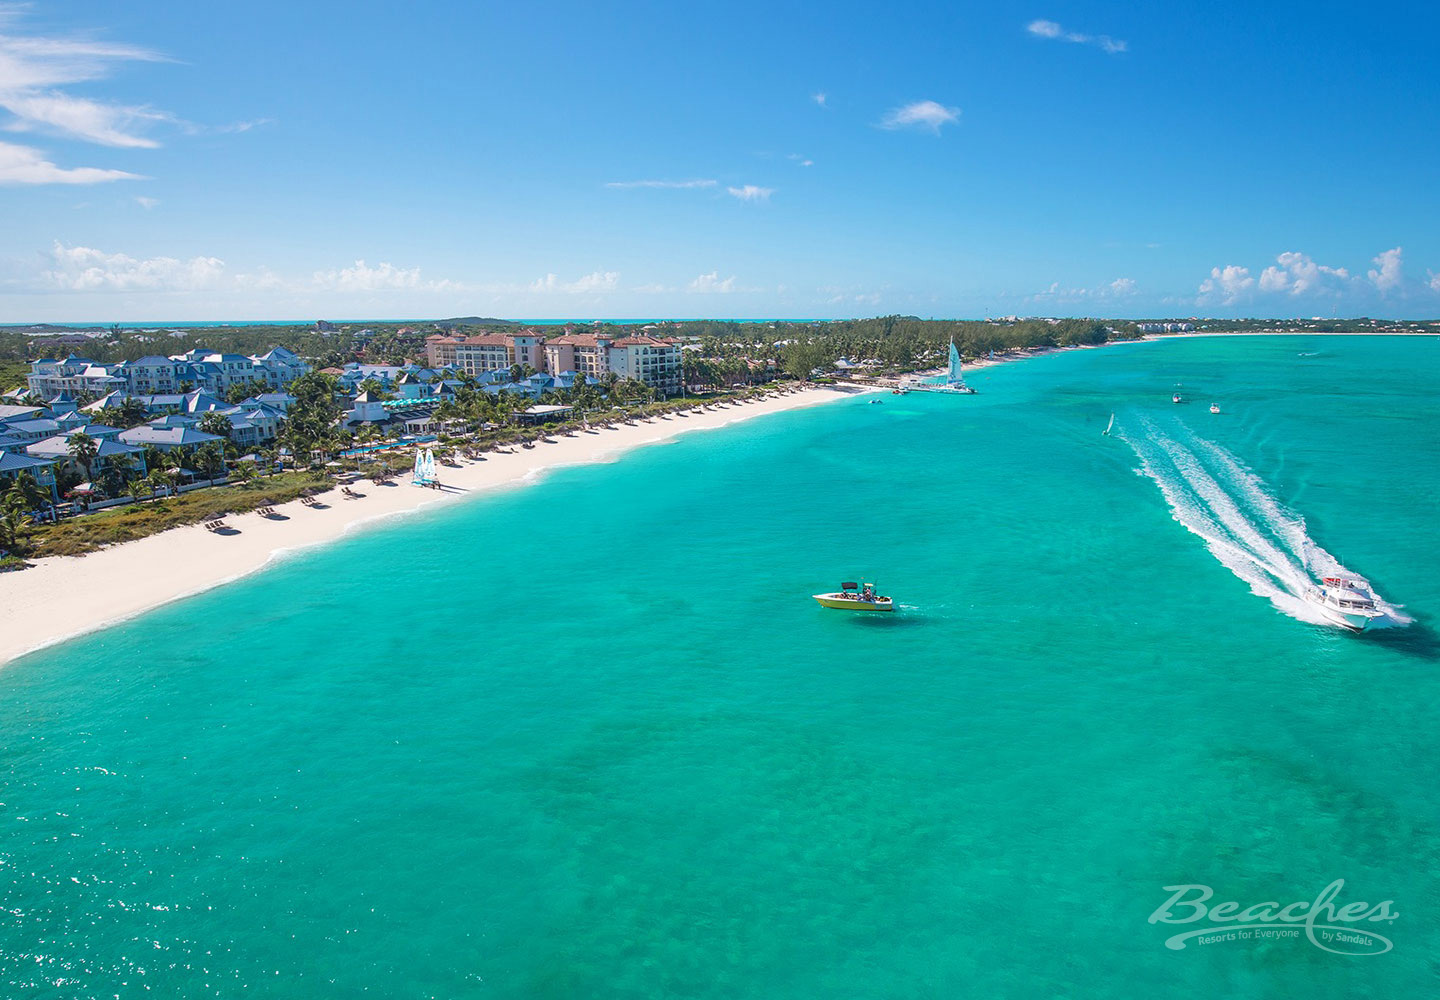 Travel Agency All-Inclusive Resort Beaches Turks and Caicos 148